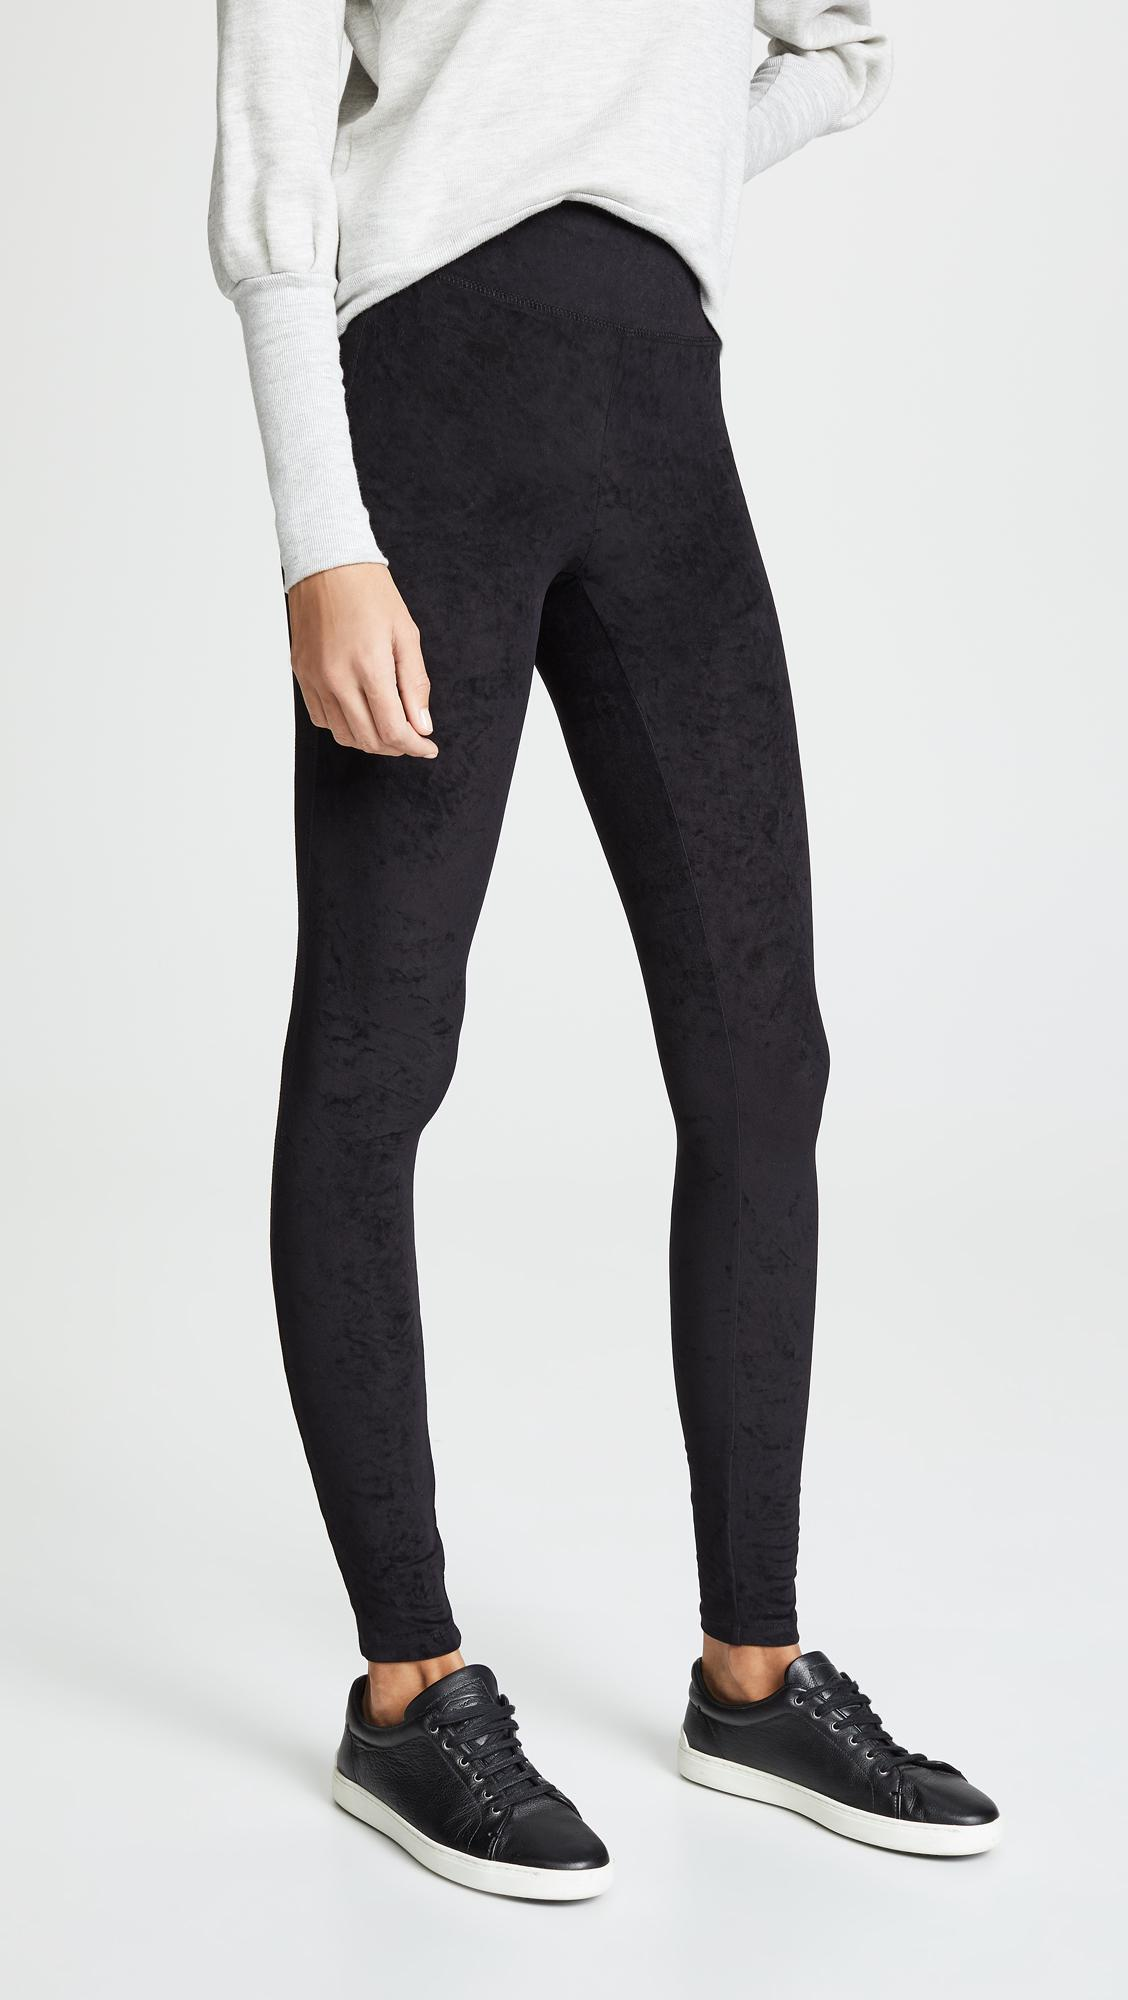 d015837d45e20a Lyst - James Perse High Waist Velvet Leggings in Black